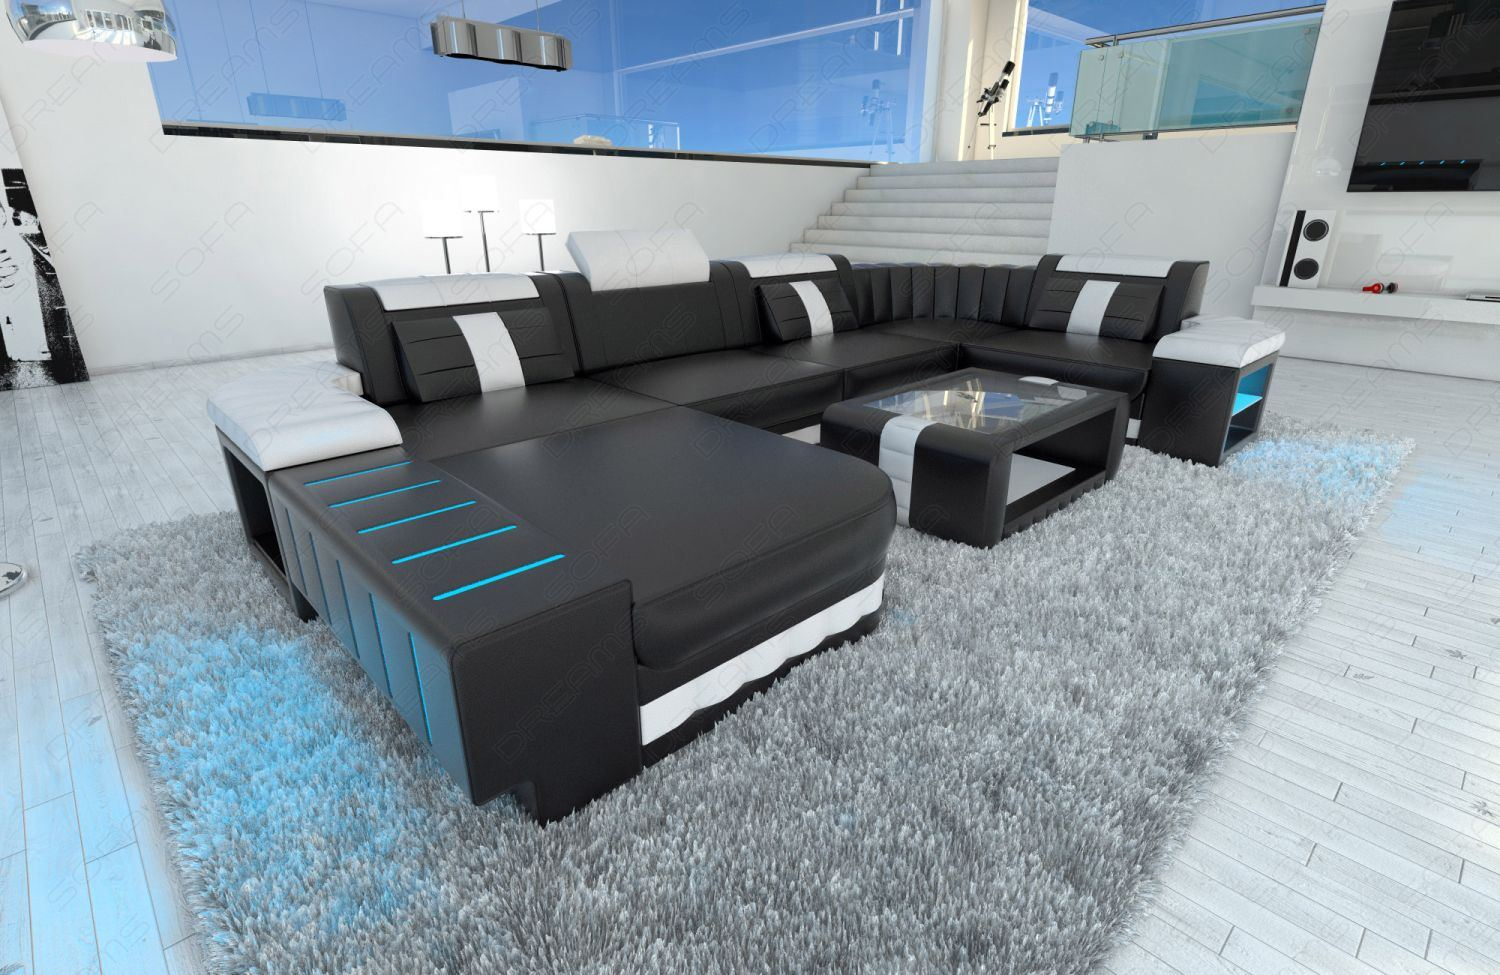 mega sofa rose mega sofa couch polstergarnitur vorschlag 1 von new look thesofa. Black Bedroom Furniture Sets. Home Design Ideas